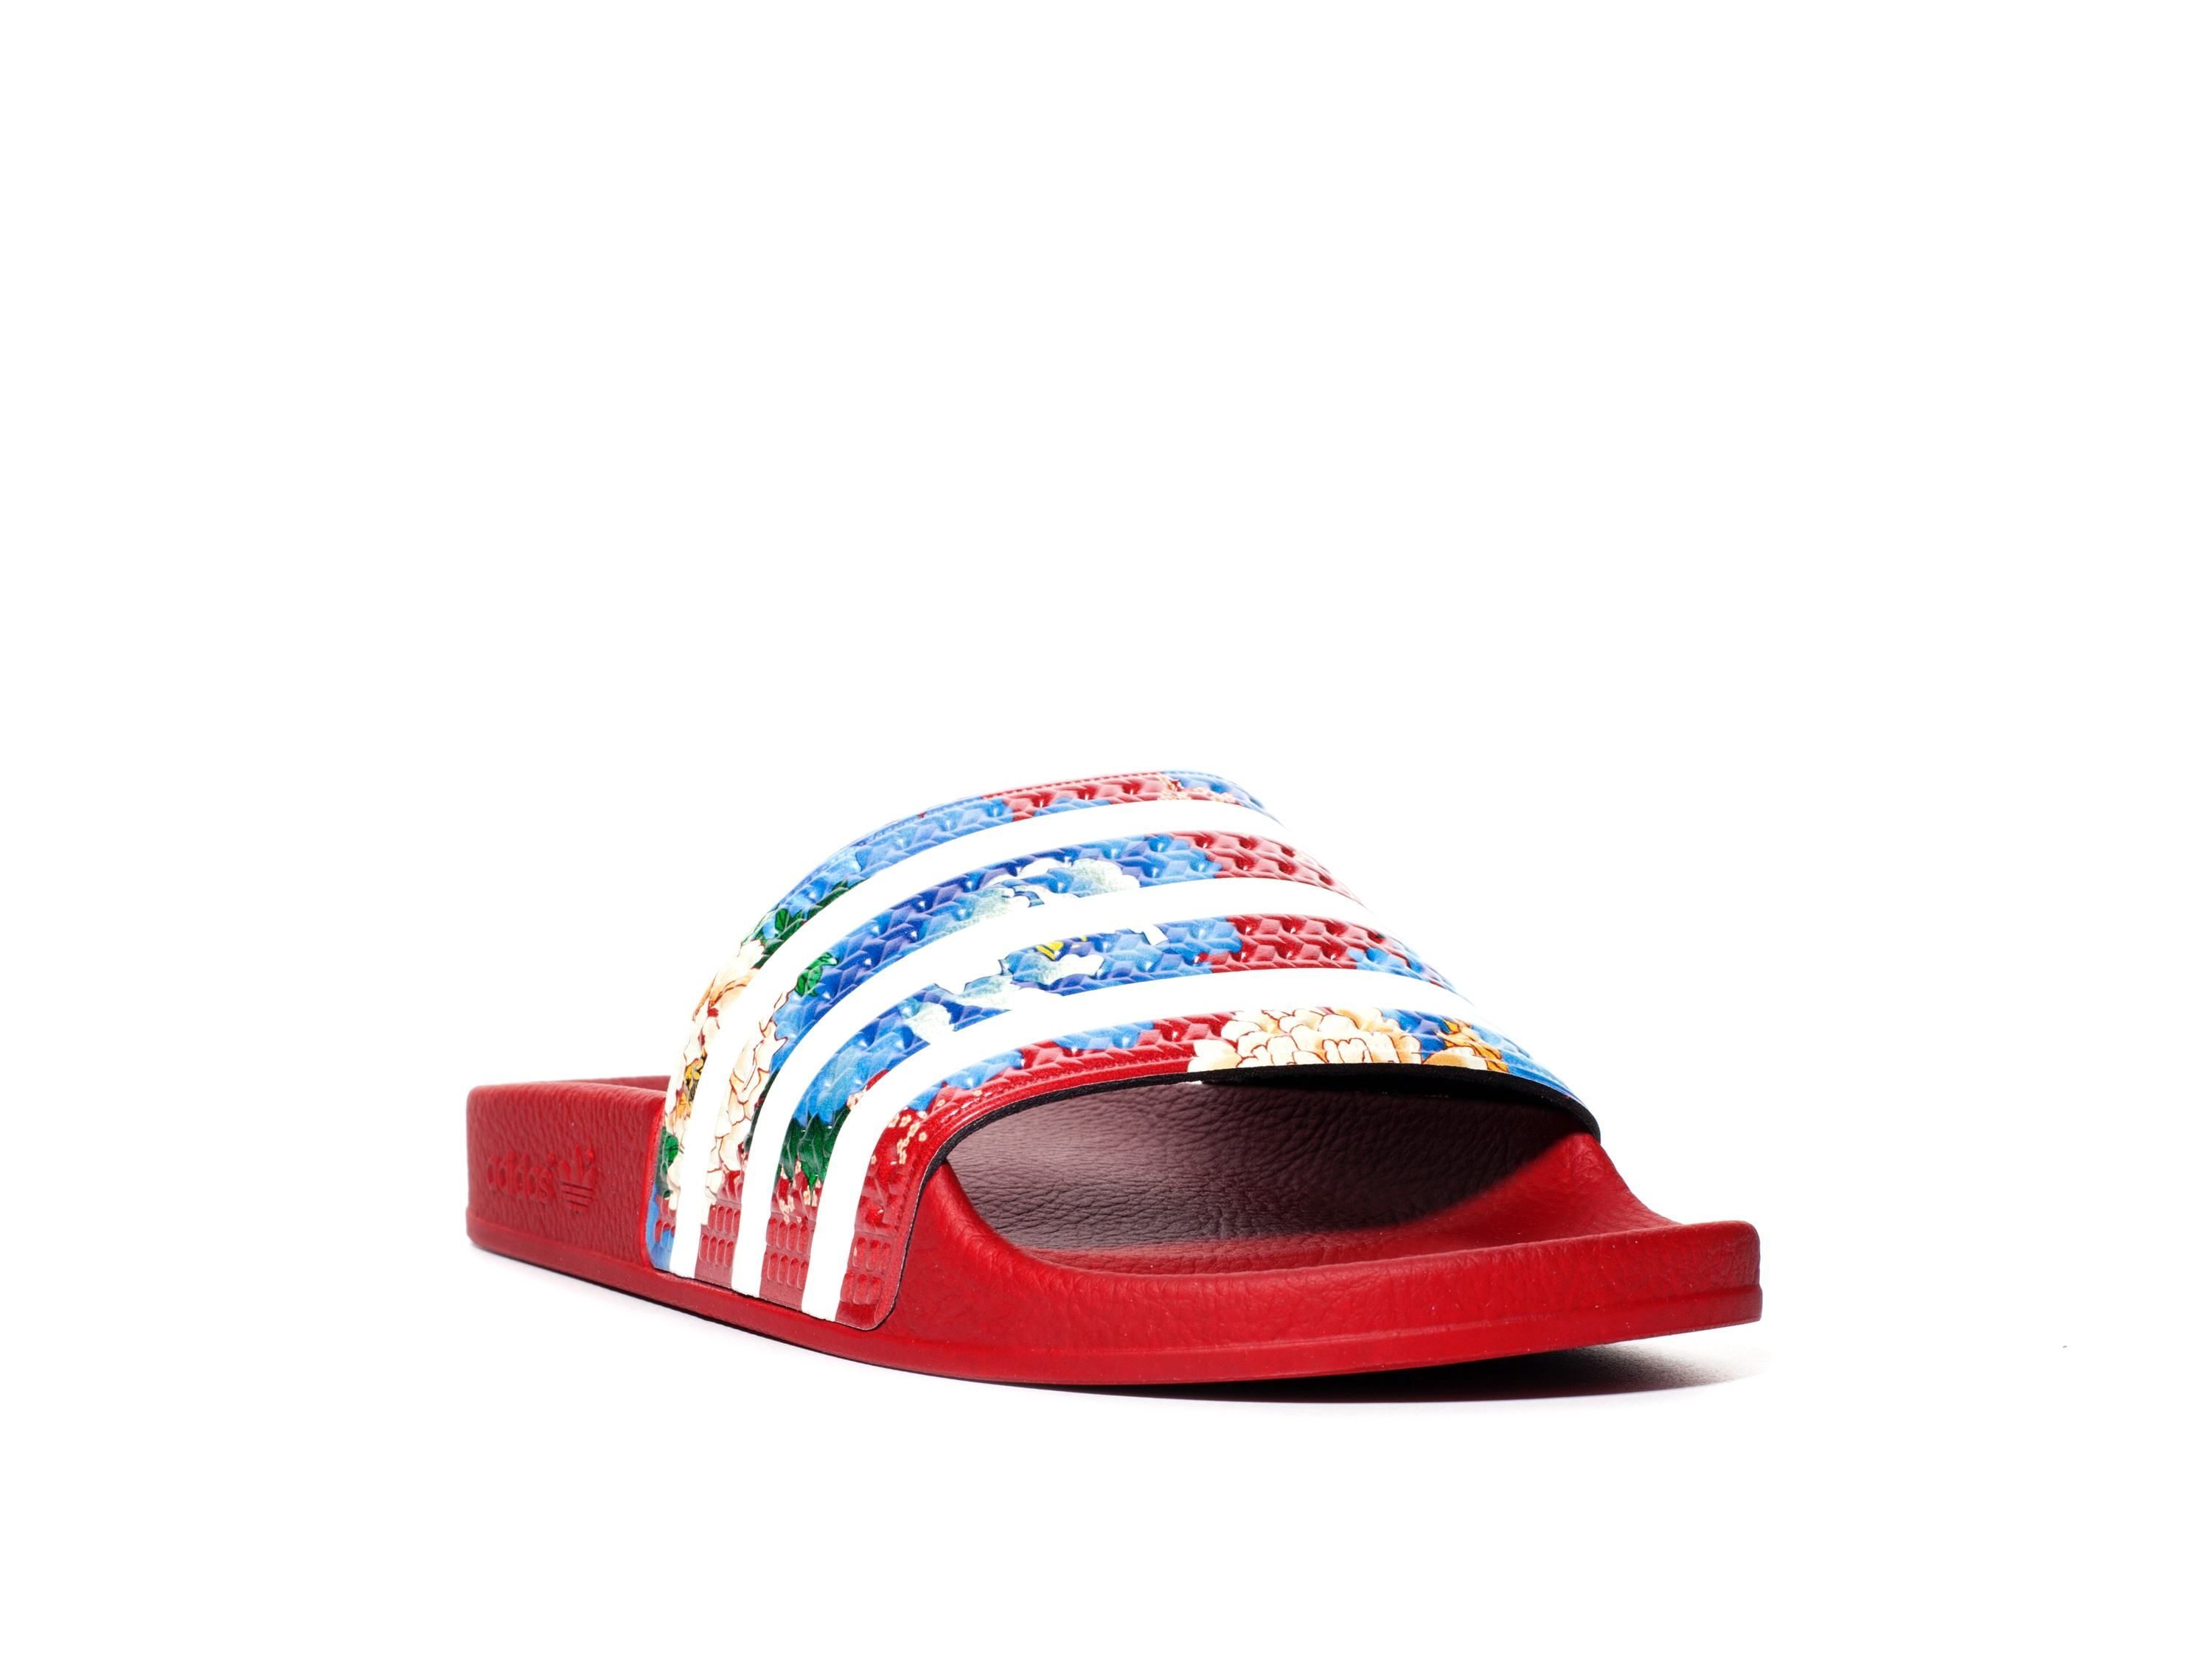 ADIDAS - ADILETTE FLORAL SLIDE - RED Comfort and style meet with the  Adilette Slide.